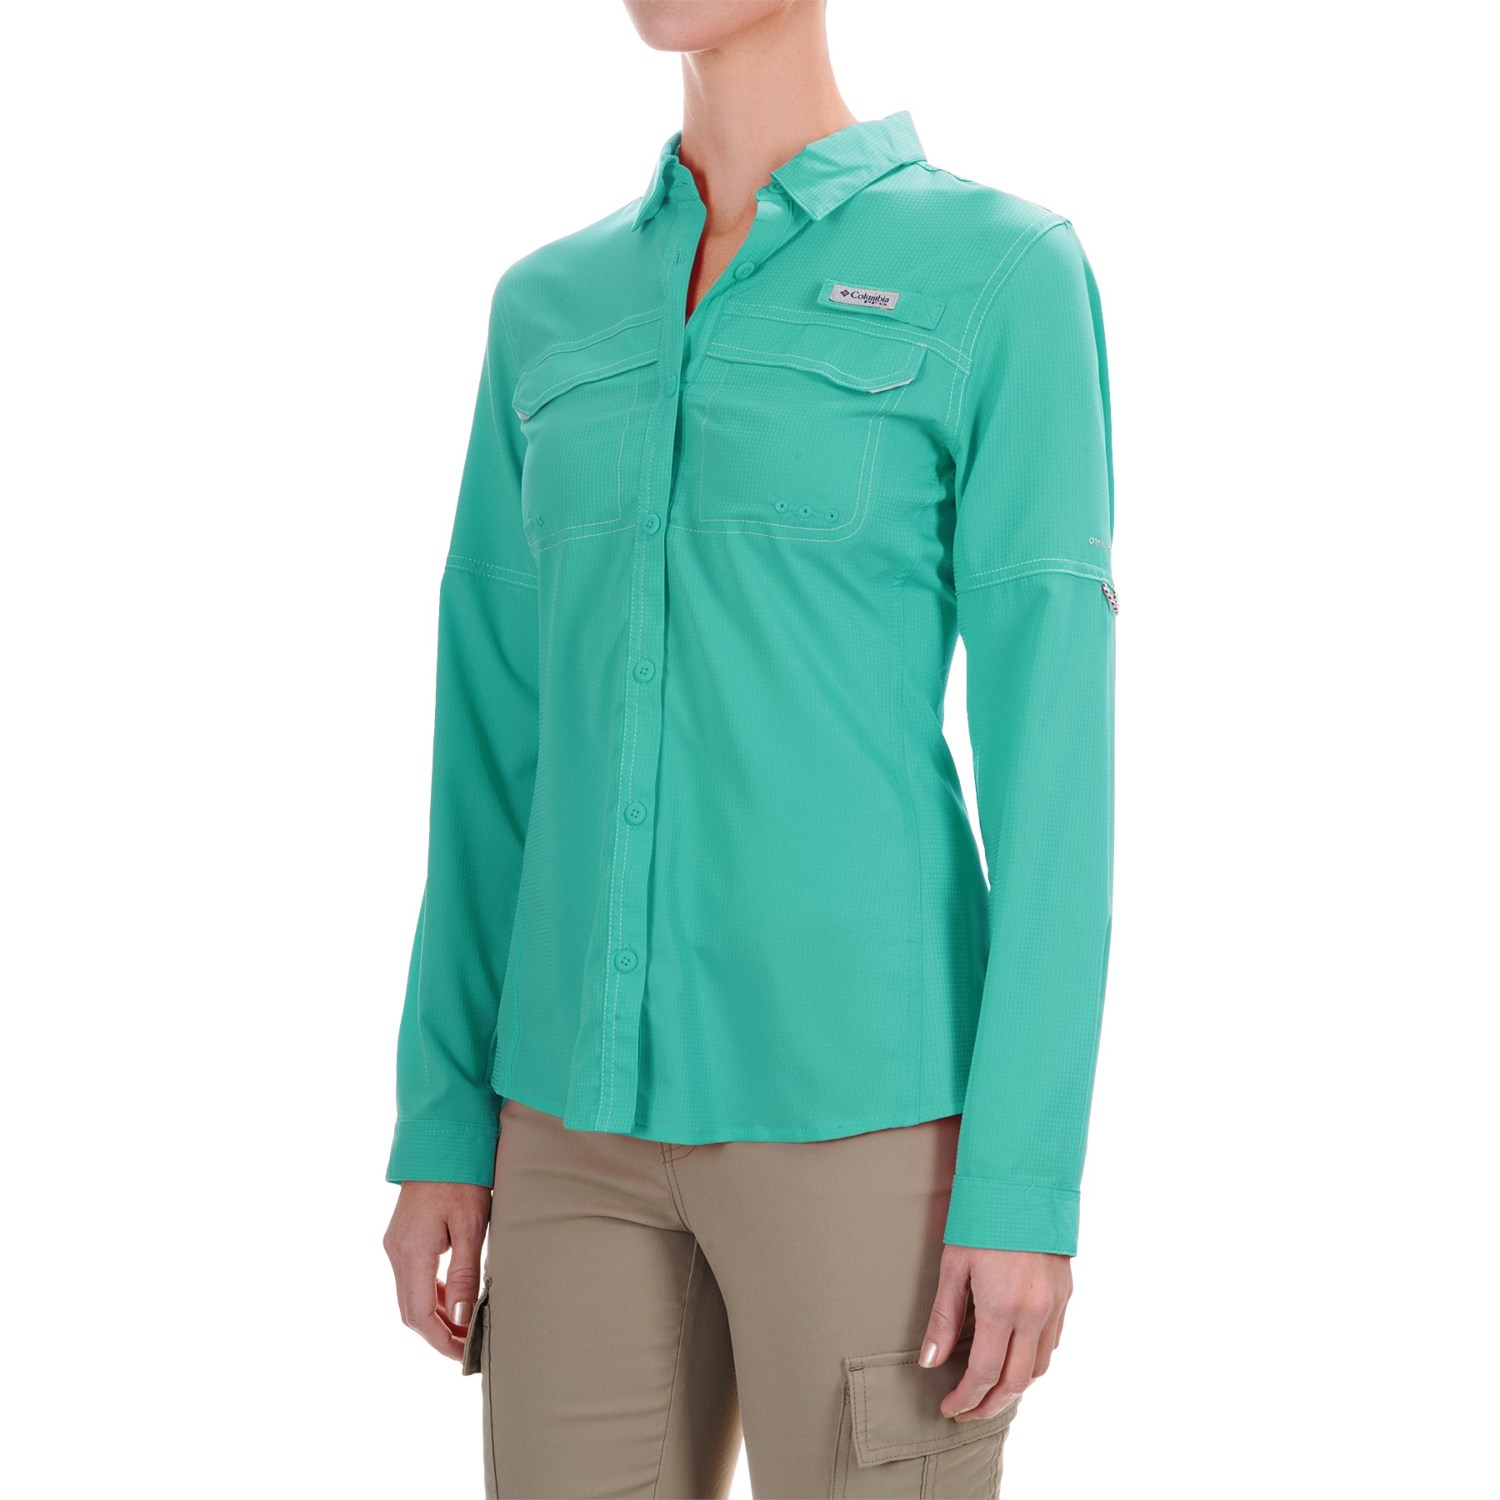 Columbia sportswear pfg lo drag shirt for women for Columbia shirts womens pfg